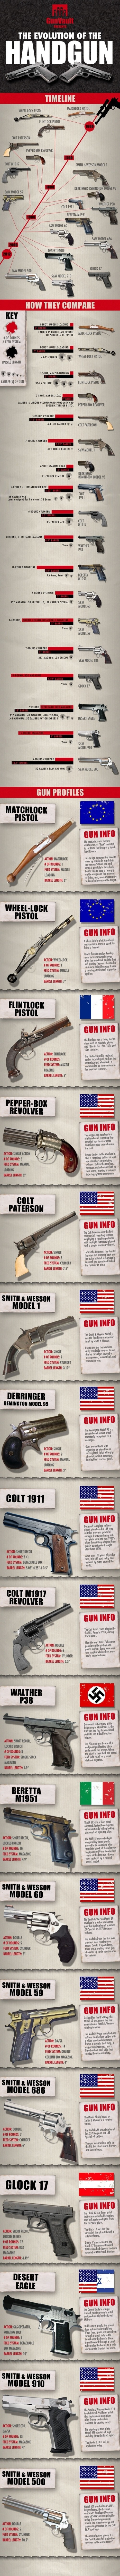 evolution-of-the-handgun